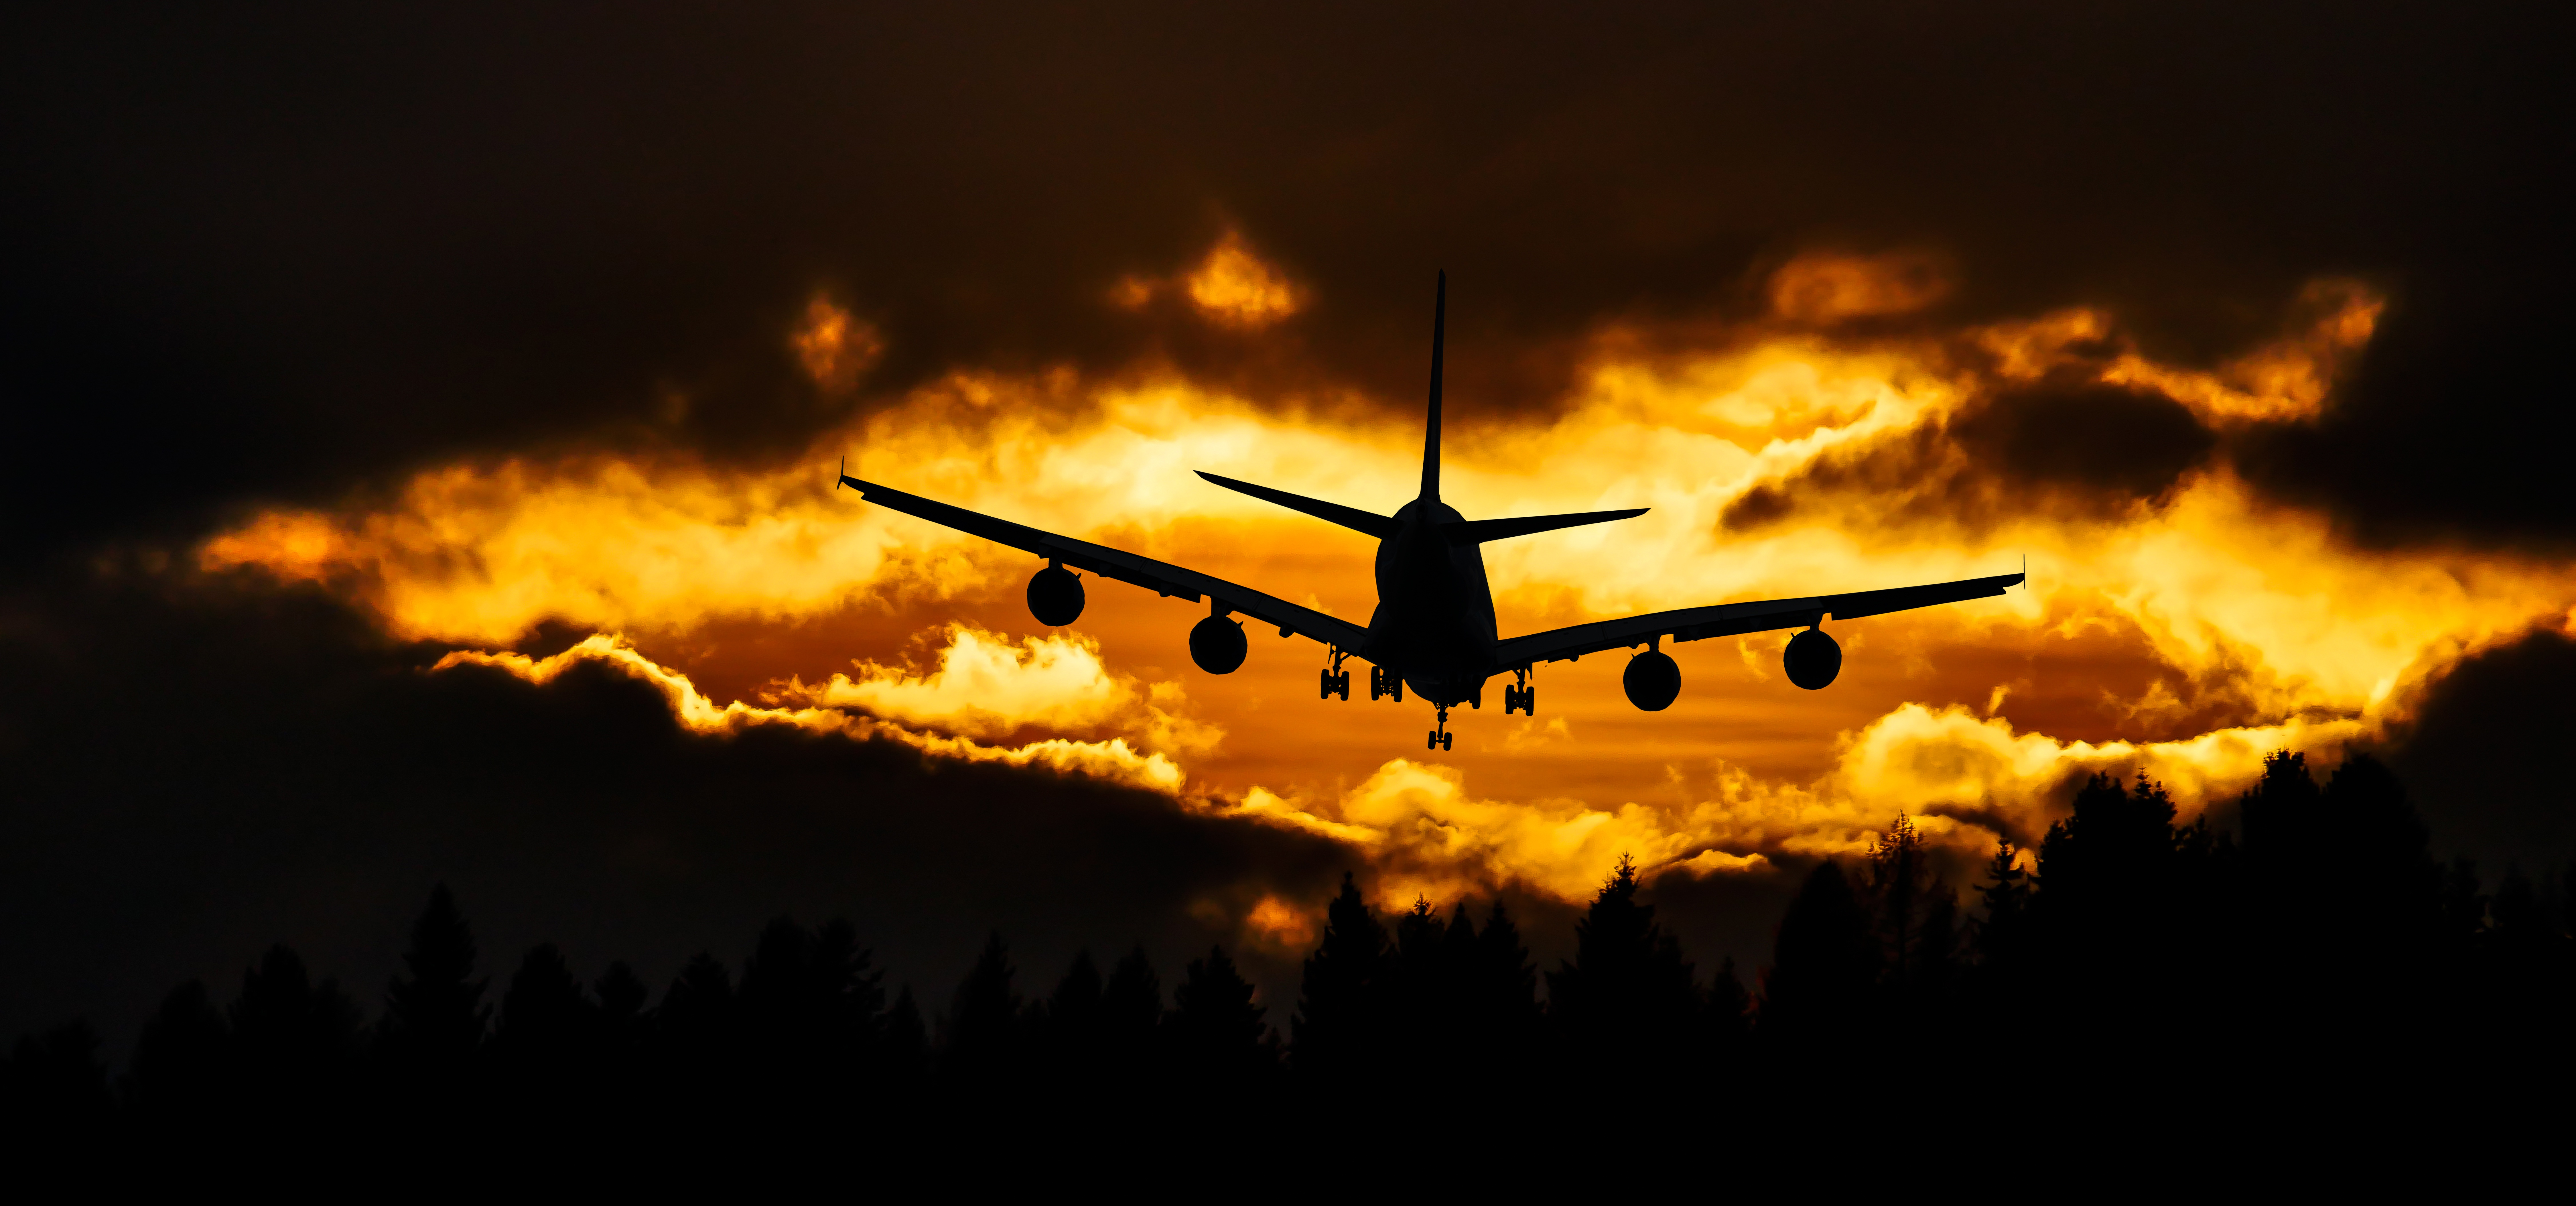 Hd Aeroplane Wallpapers For Desktop Airplane Silhouette On Air During Sunset 183 Free Stock Photo